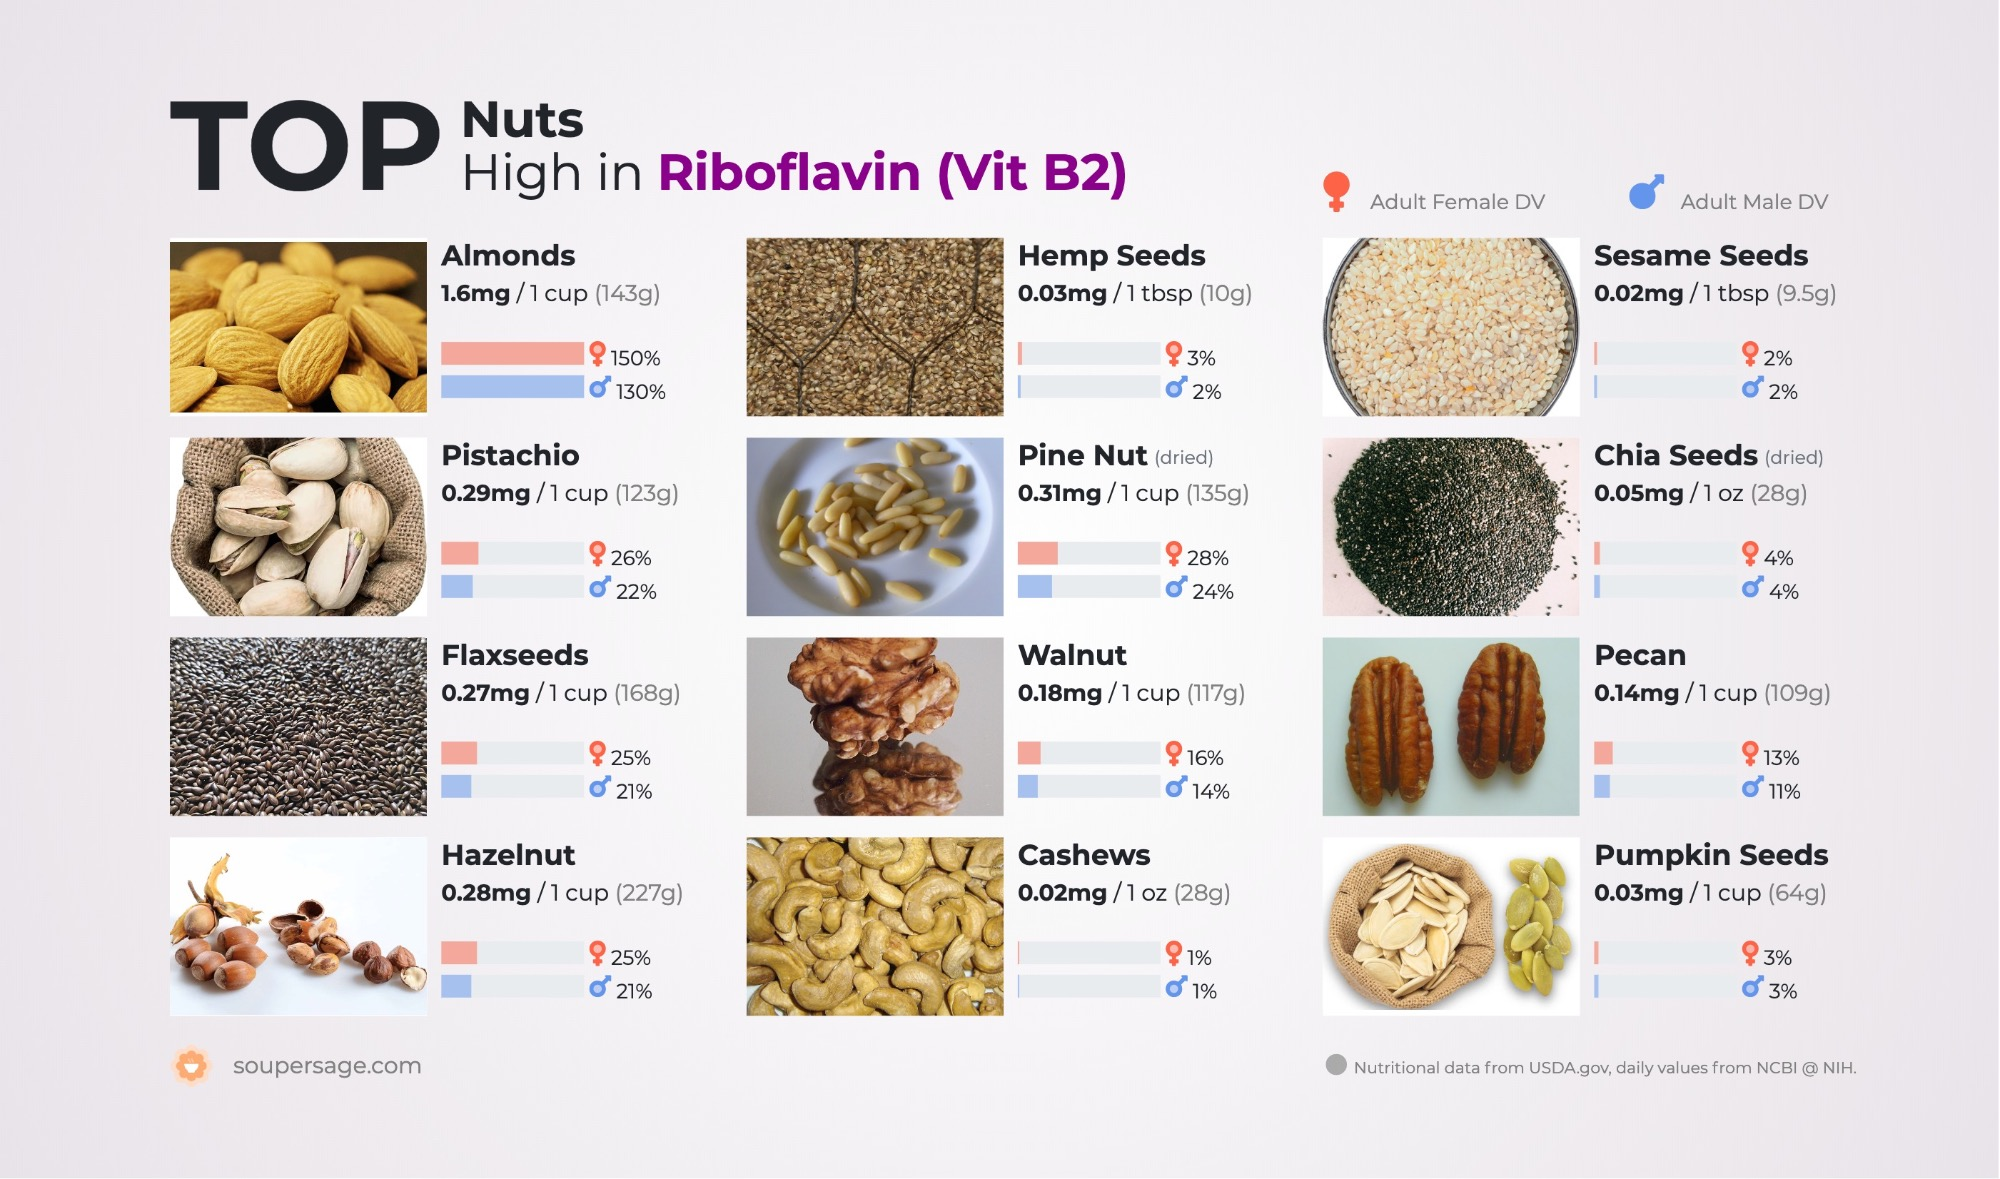 image of Top Nuts High in Riboflavin (Vit B2)